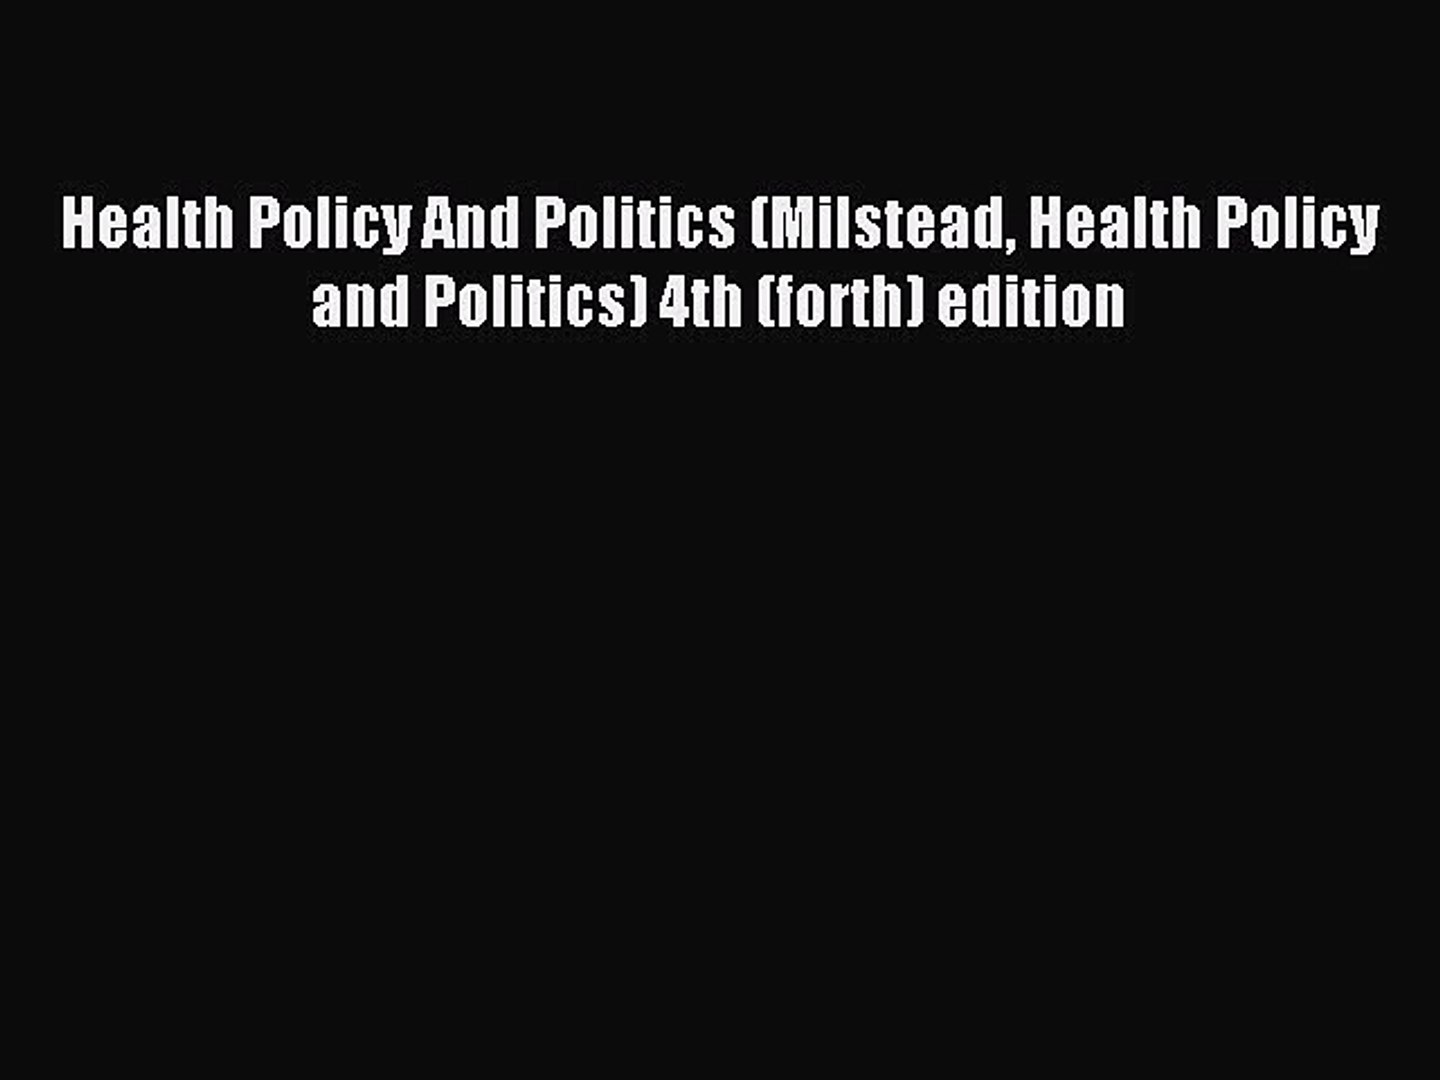 Download Health Policy And Politics (Milstead Health Policy and Politics) 4th (forth) edition